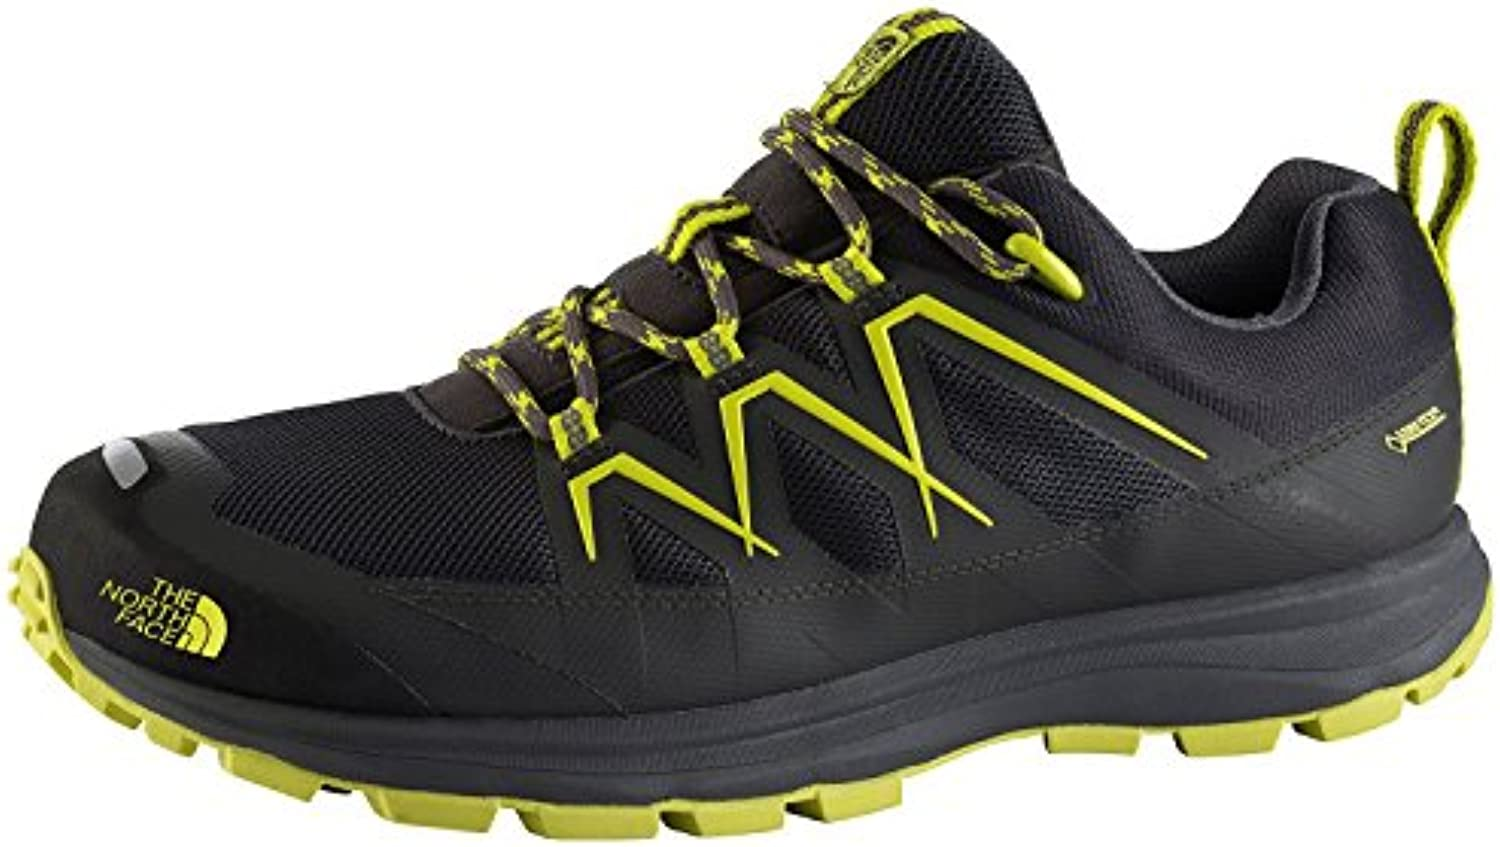 The North Face – Hombre Zapatos tamaro GTX, hombre, DRKSHADWGRY/SULPHRSPRGGRN